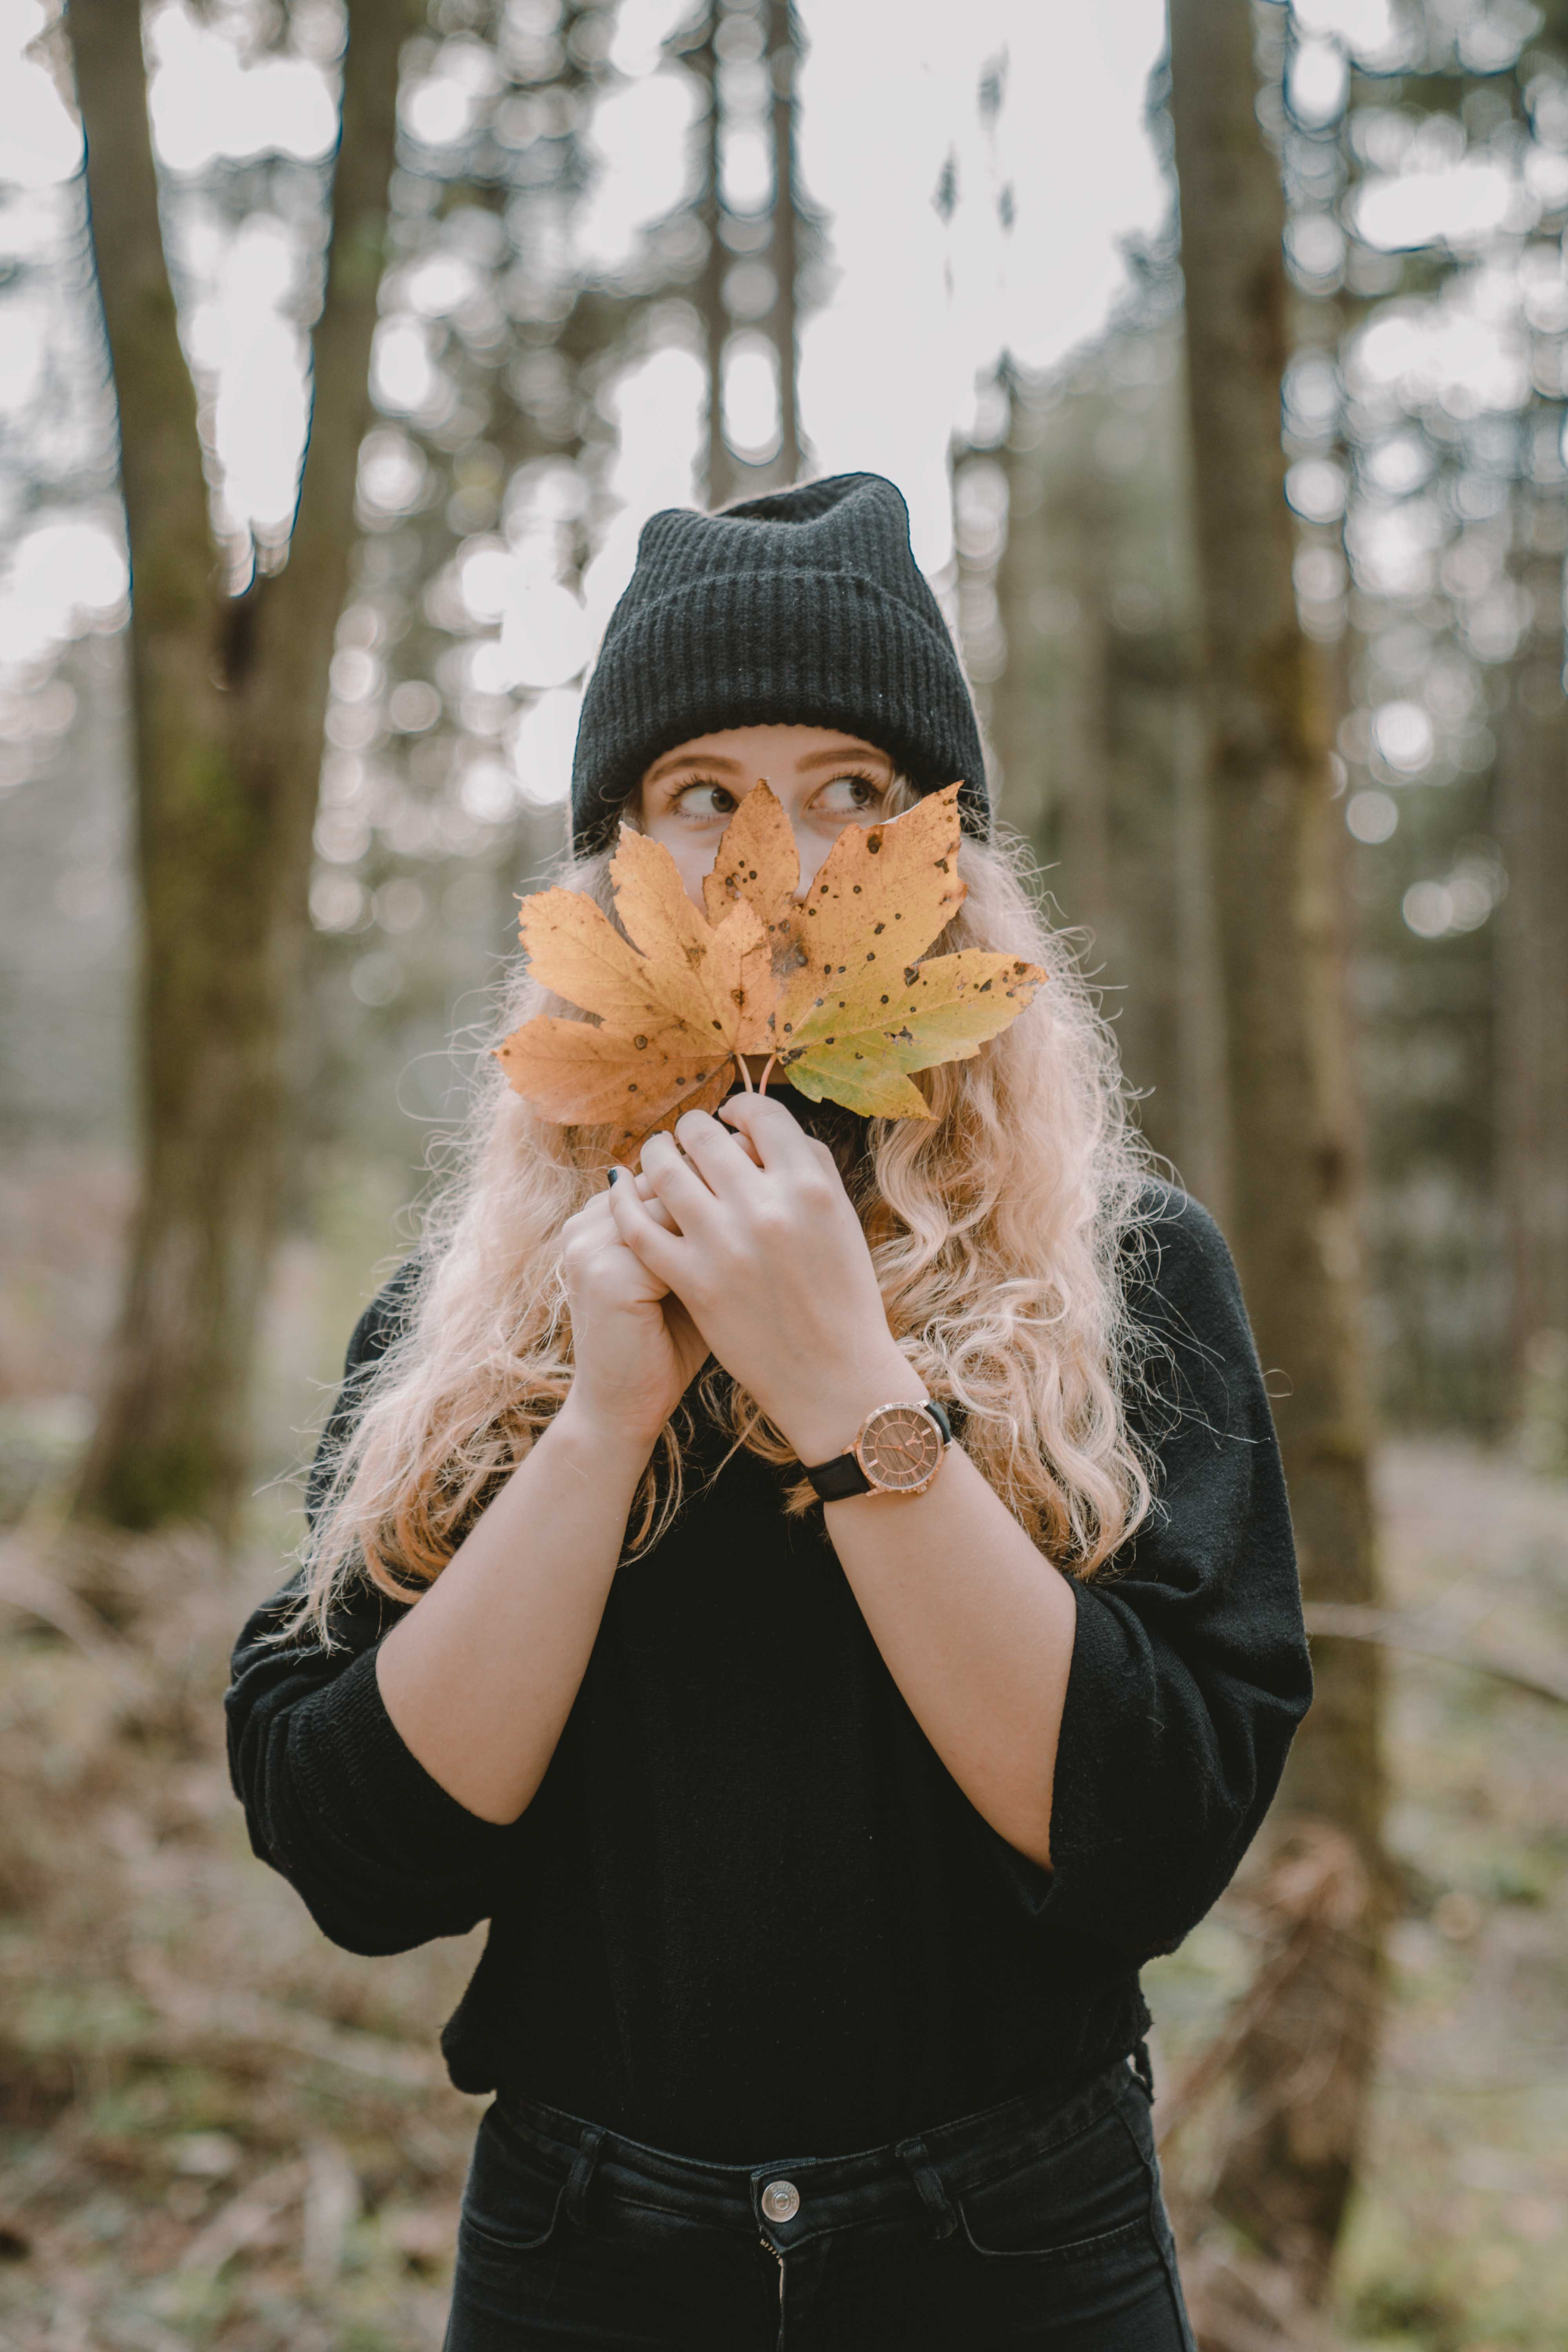 Girl hiding her face behind orange autumn leaves wearing a wrist watch by Timber&Jack